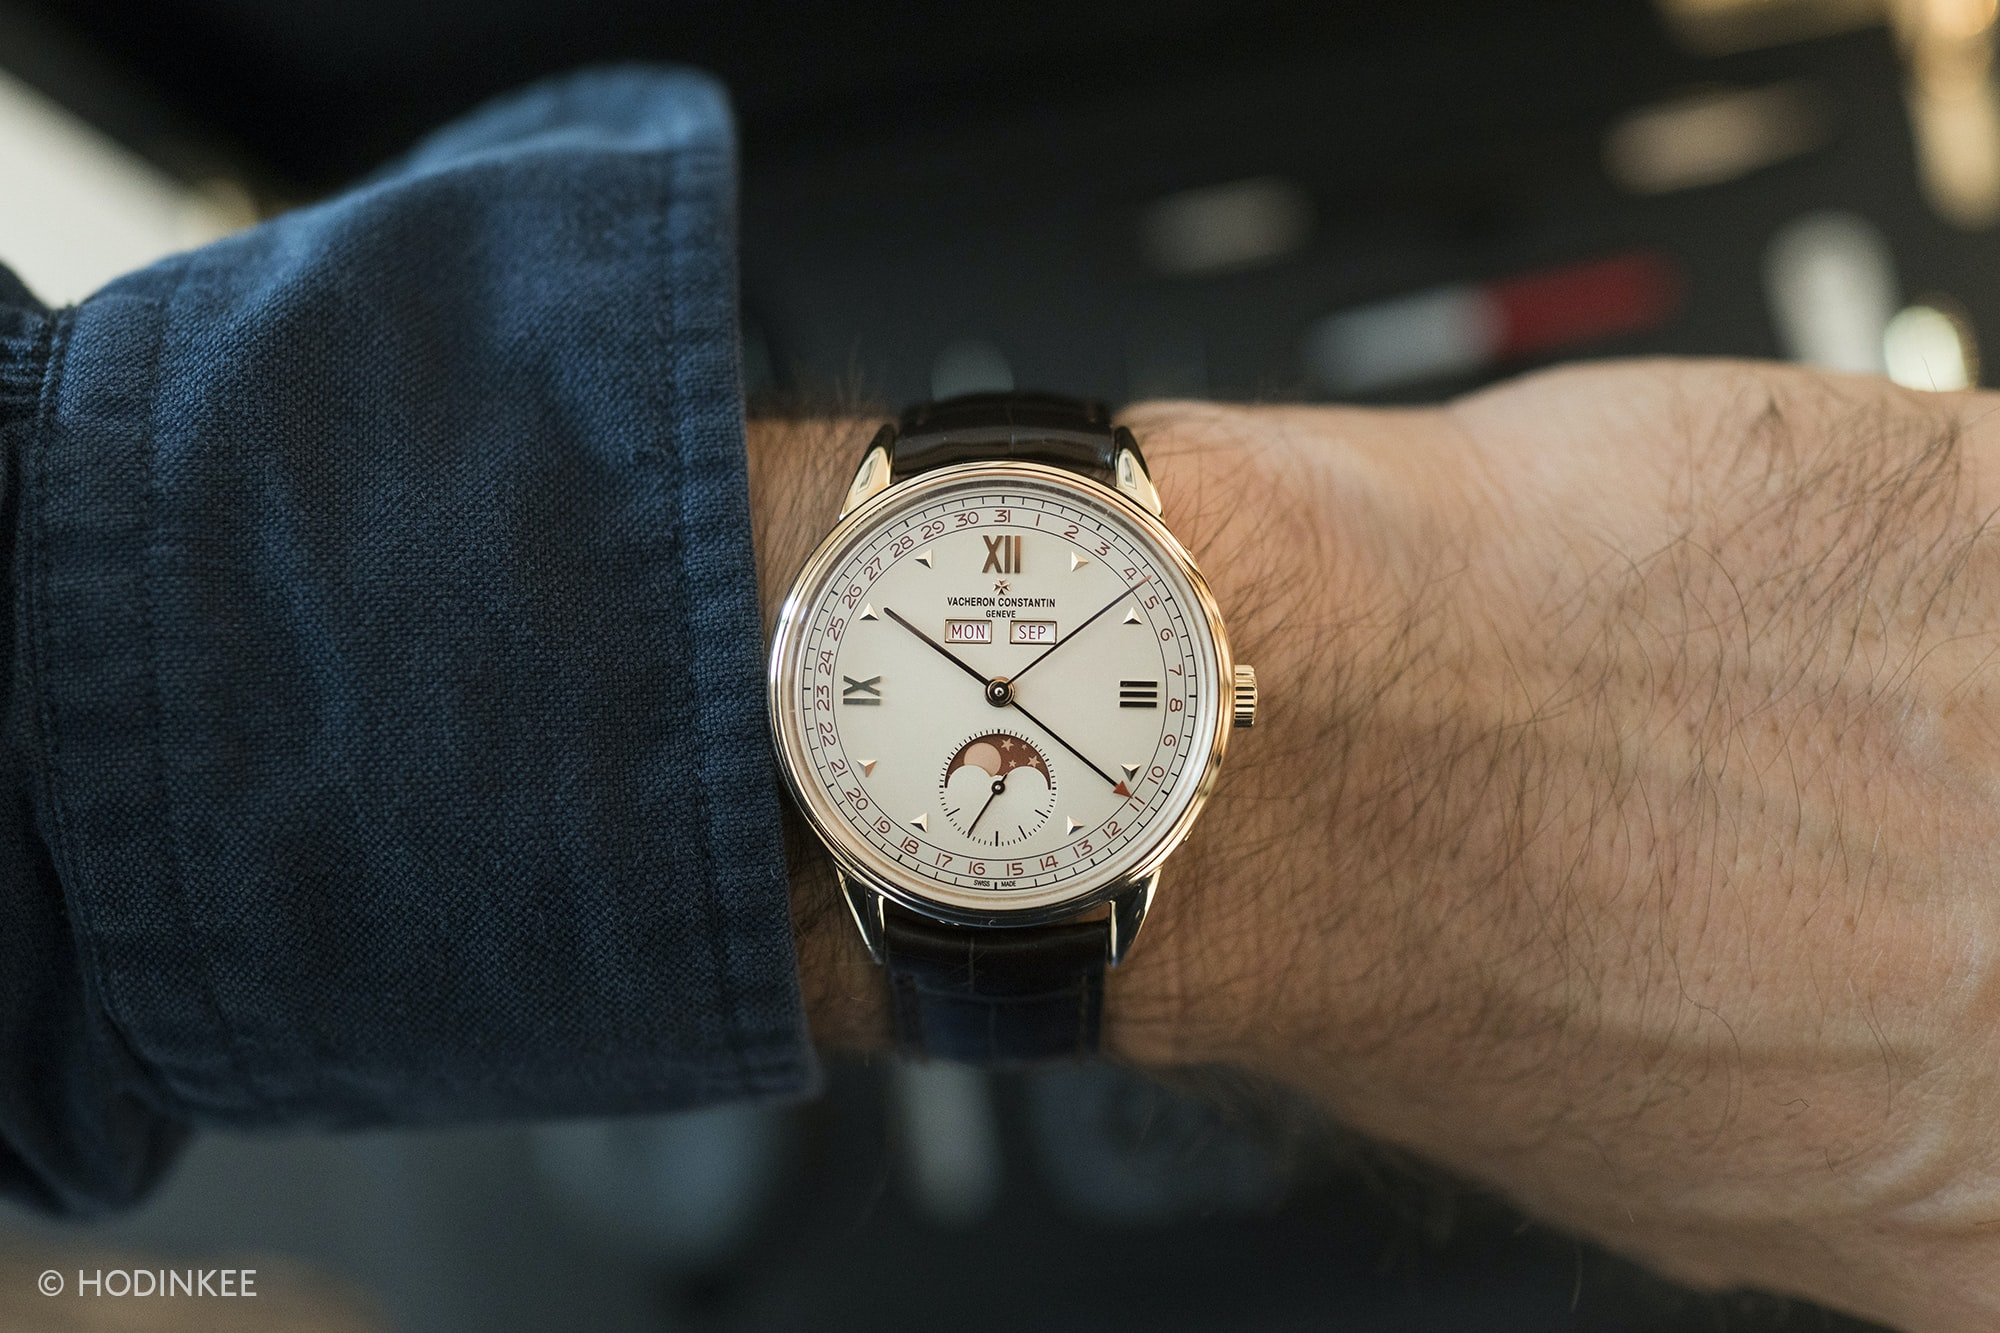 vacheron historiques 1948 red date numerals wrist shot Introducing: The New Vacheron Constantin Historiques: Triple Calendrier 1942 And 1948, And American 1921 Small (Exclusive Live Pics) Introducing: The New Vacheron Constantin Historiques: Triple Calendrier 1942 And 1948, And American 1921 Small (Exclusive Live Pics) DSC00103 copy